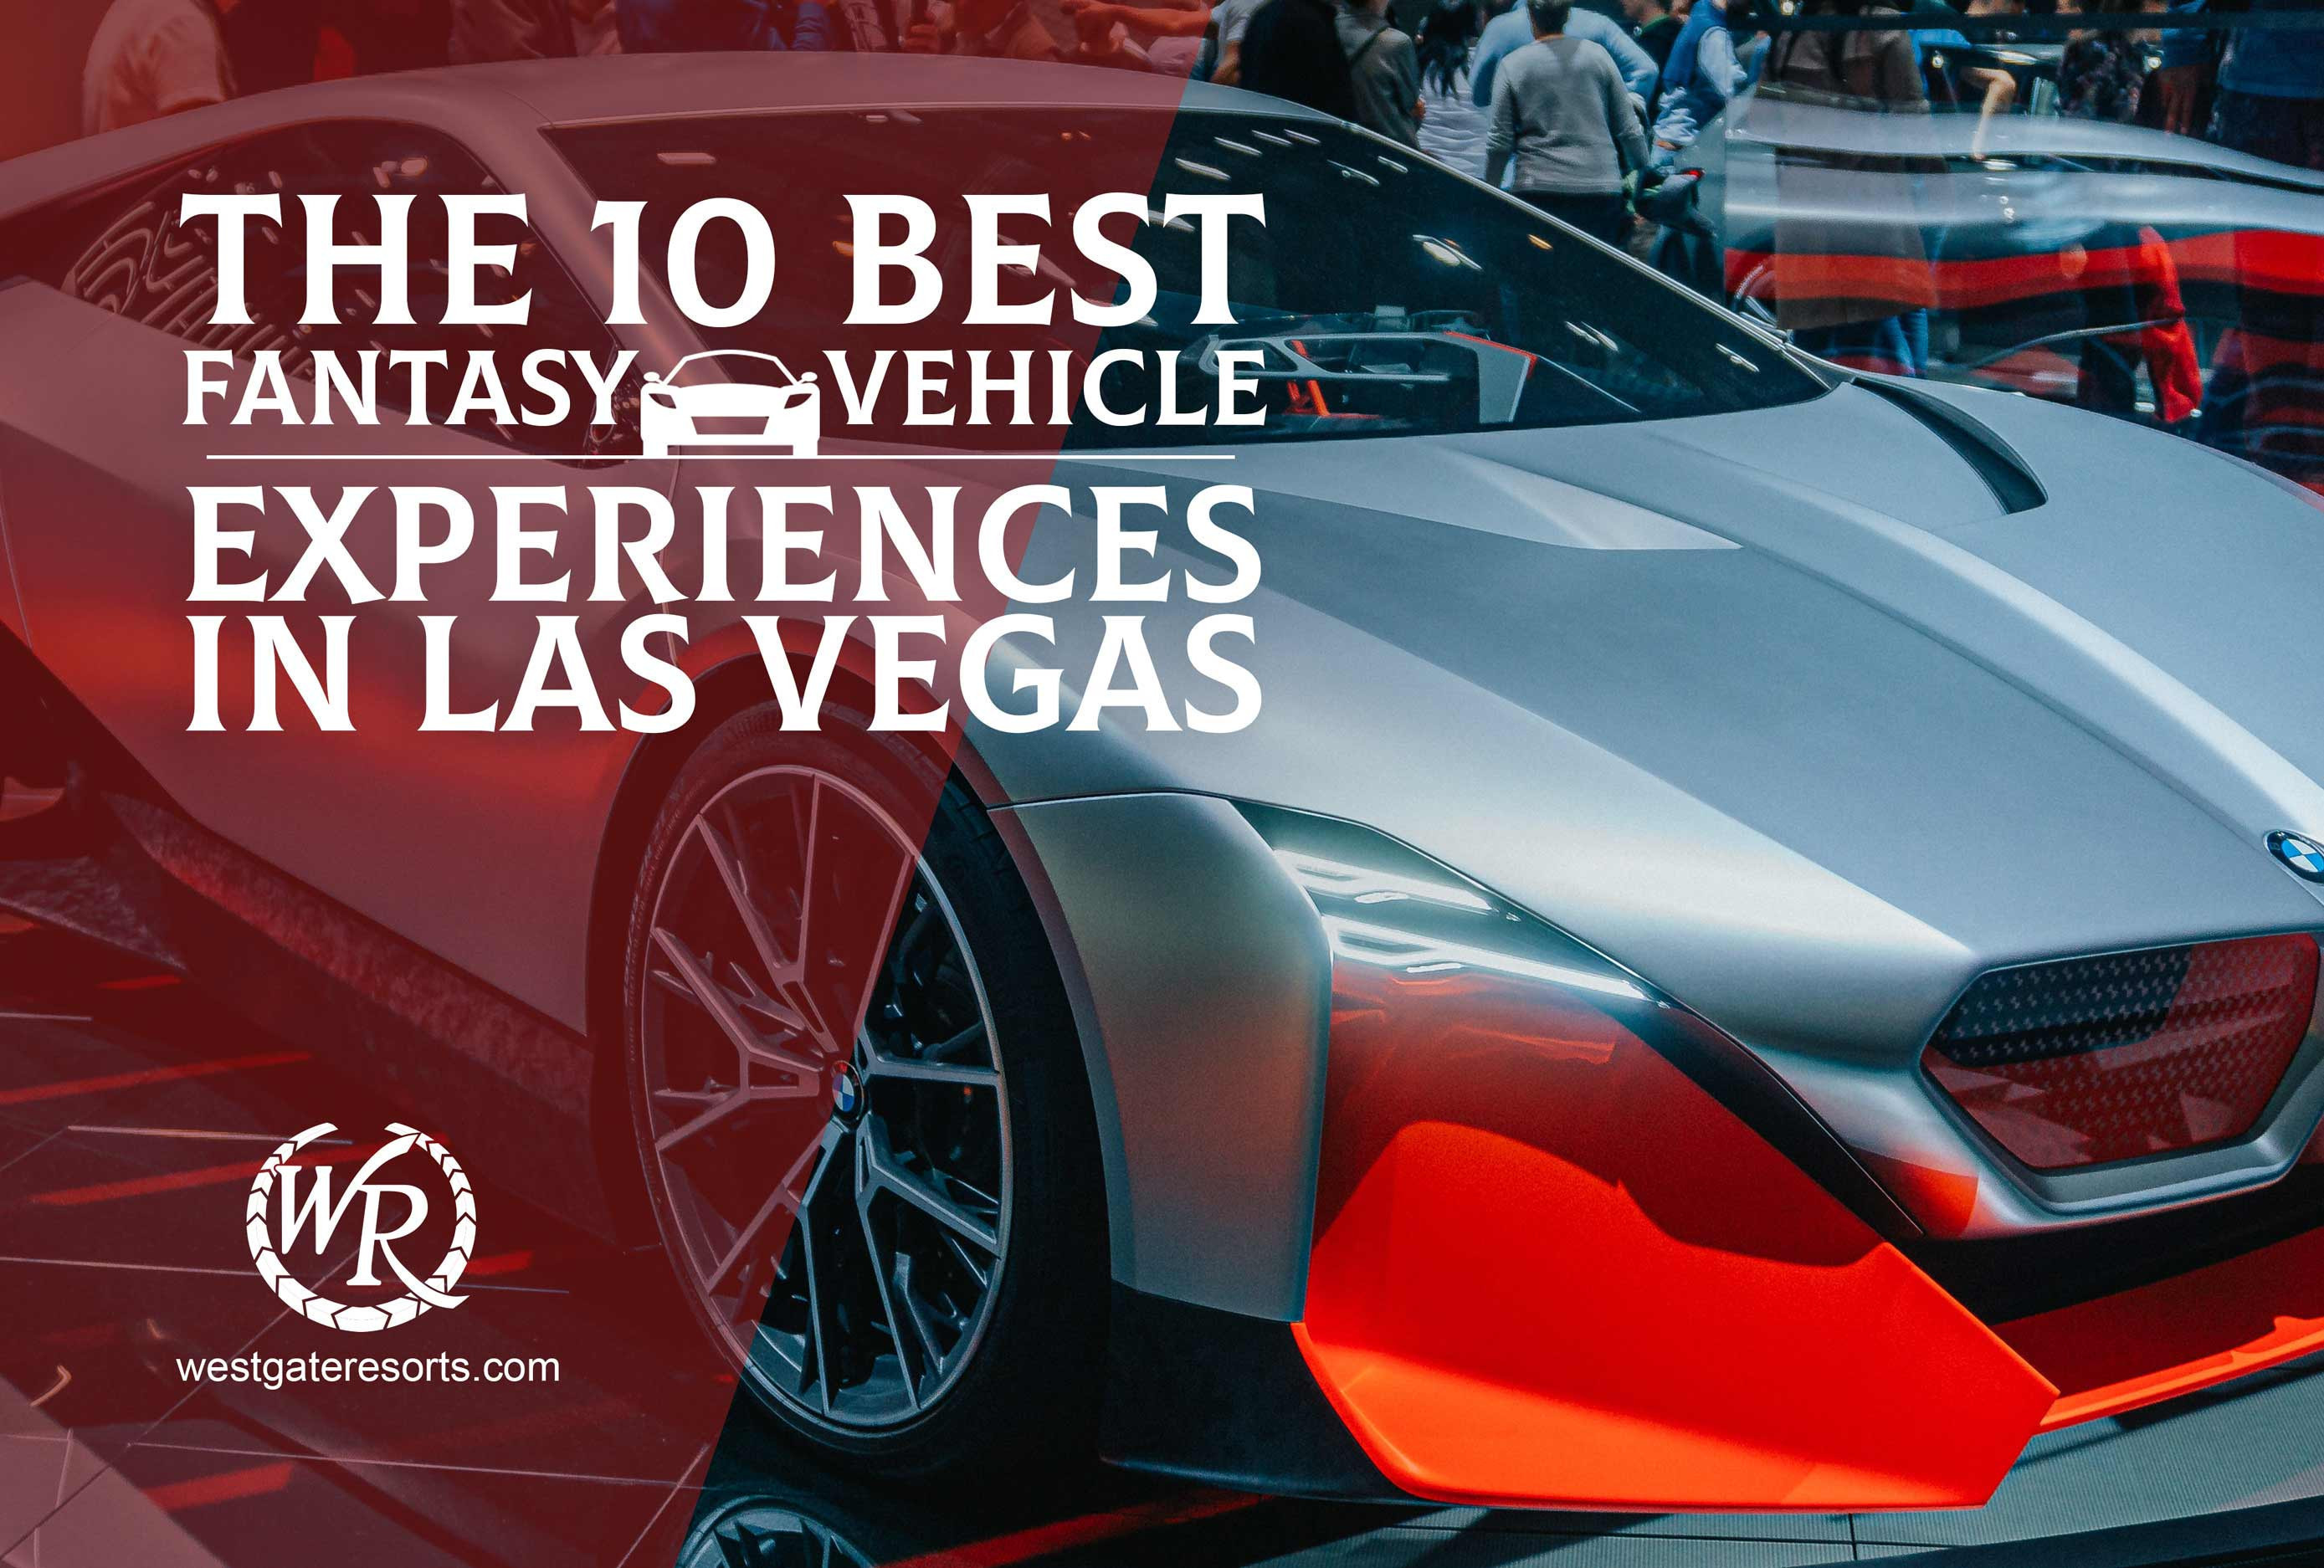 The Top 10 Fantasy Vehicle Driving Experiences in Las Vegas | Exotic Cars & Racing In Las Vegas